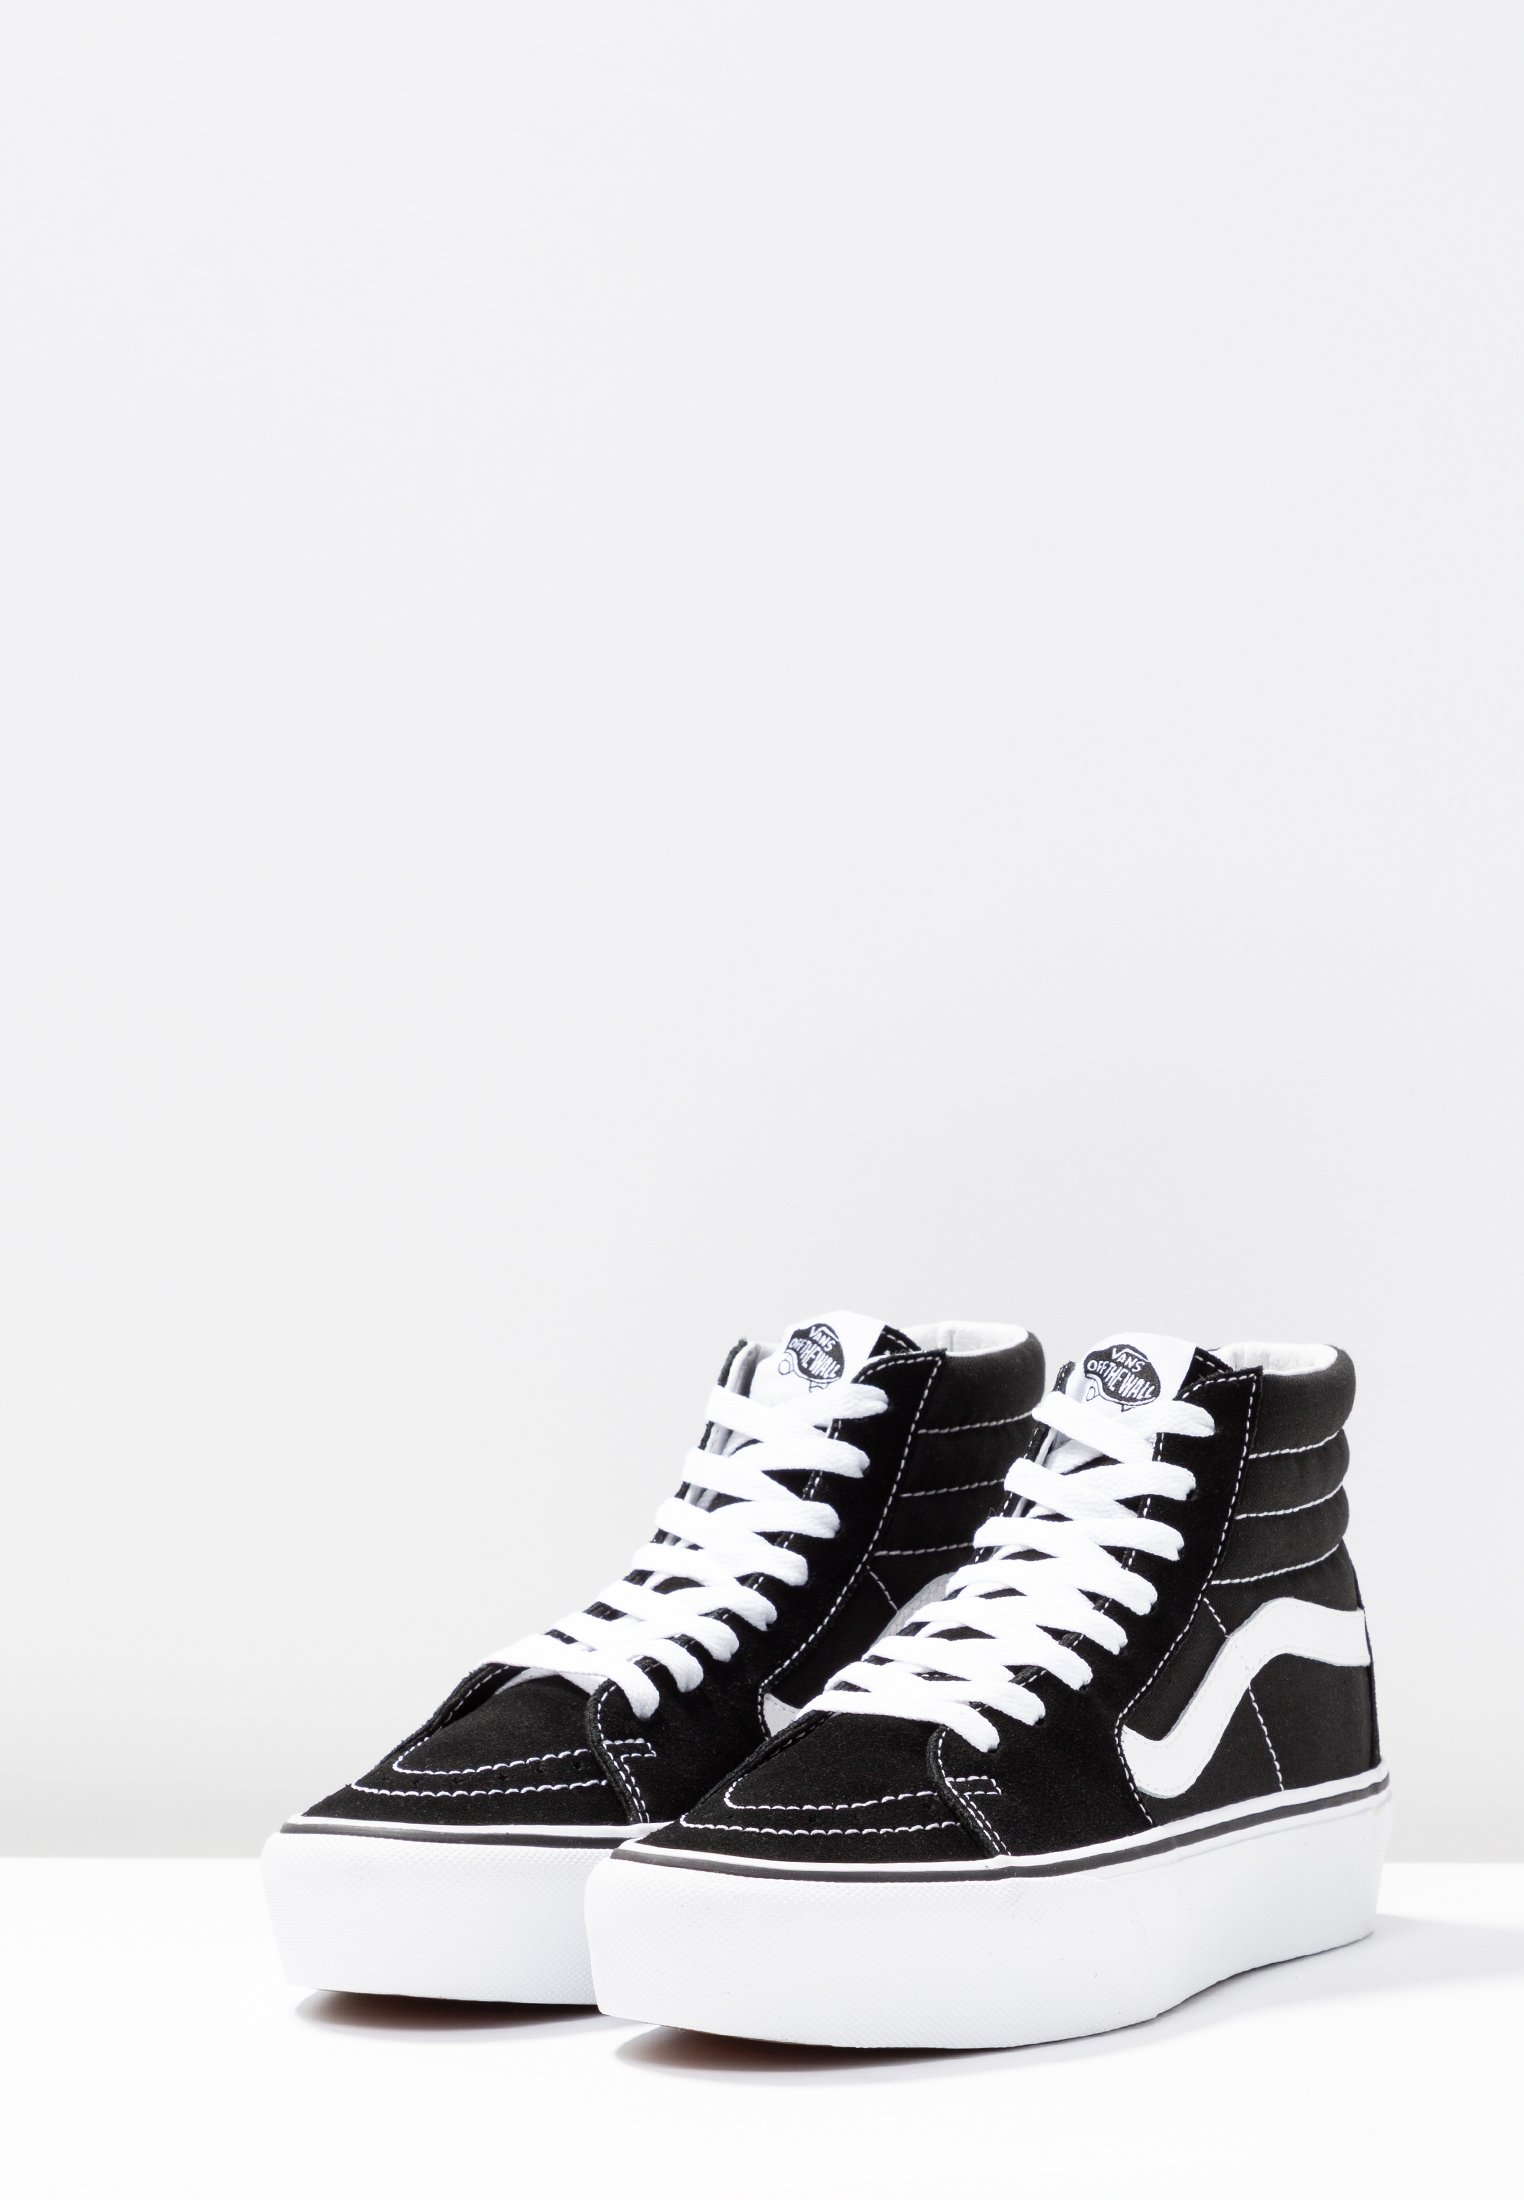 Vans SK8 PLATFORM 2.0 Baskets montantes blacktrue white